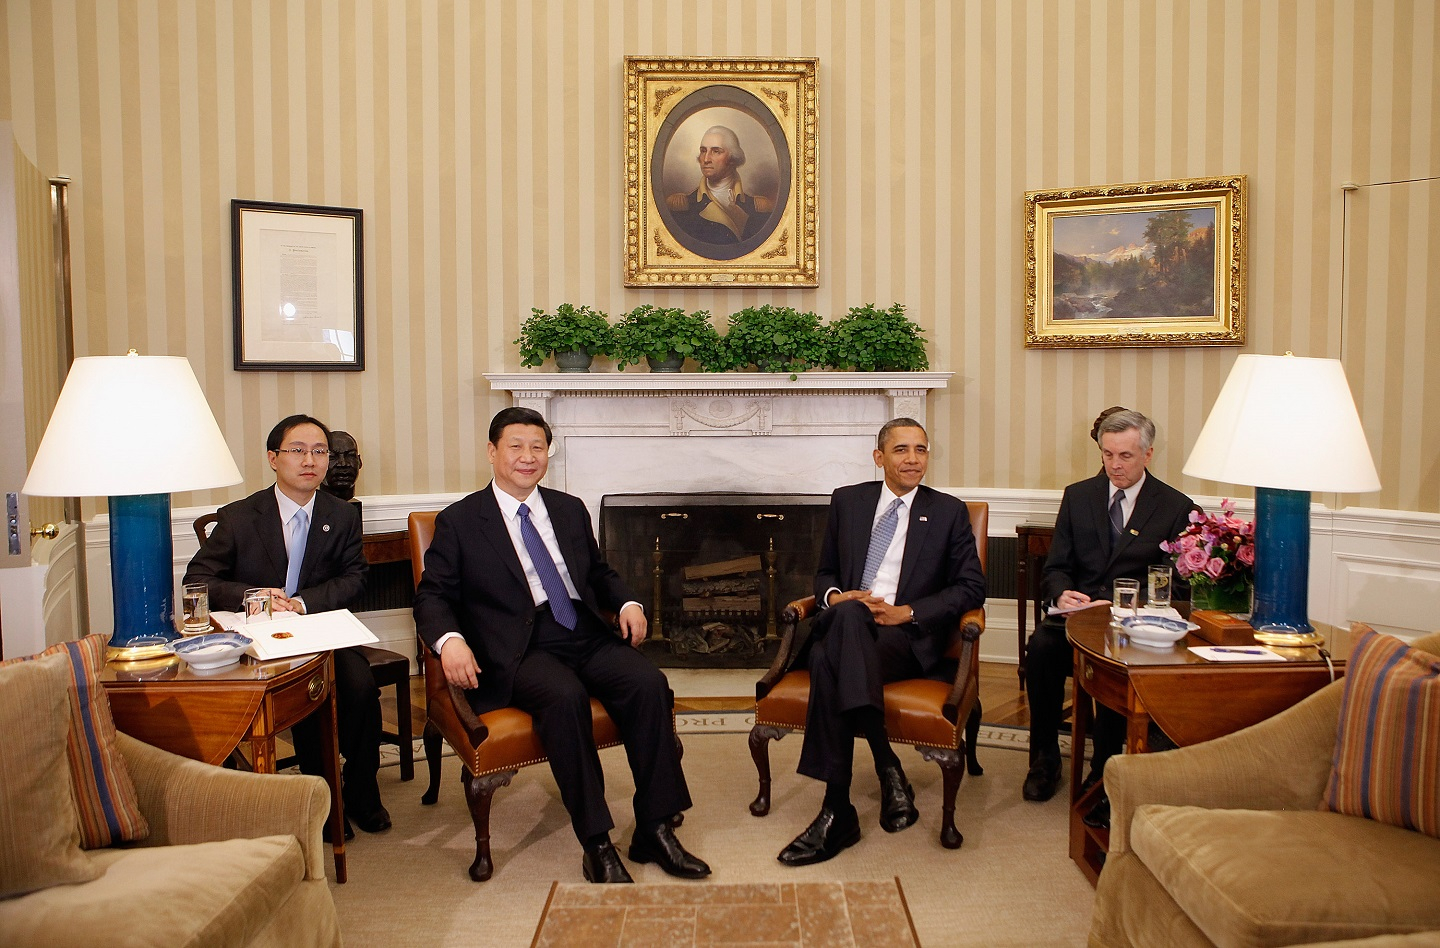 WASHINGTON, DC - FEBRUARY 14: U.S. President Barack Obama (2nd R) and Chinese Vice President Xi Jinping (2nd L) pose for photographs before meeting in the Oval Office at the White House February 14, 2012 in Washington, DC. While in Washington, Vice President Xi will meet with Obama, Vice President Joe Biden and other senior Administration officials to discuss a broad range of bilateral, regional, and global issues.